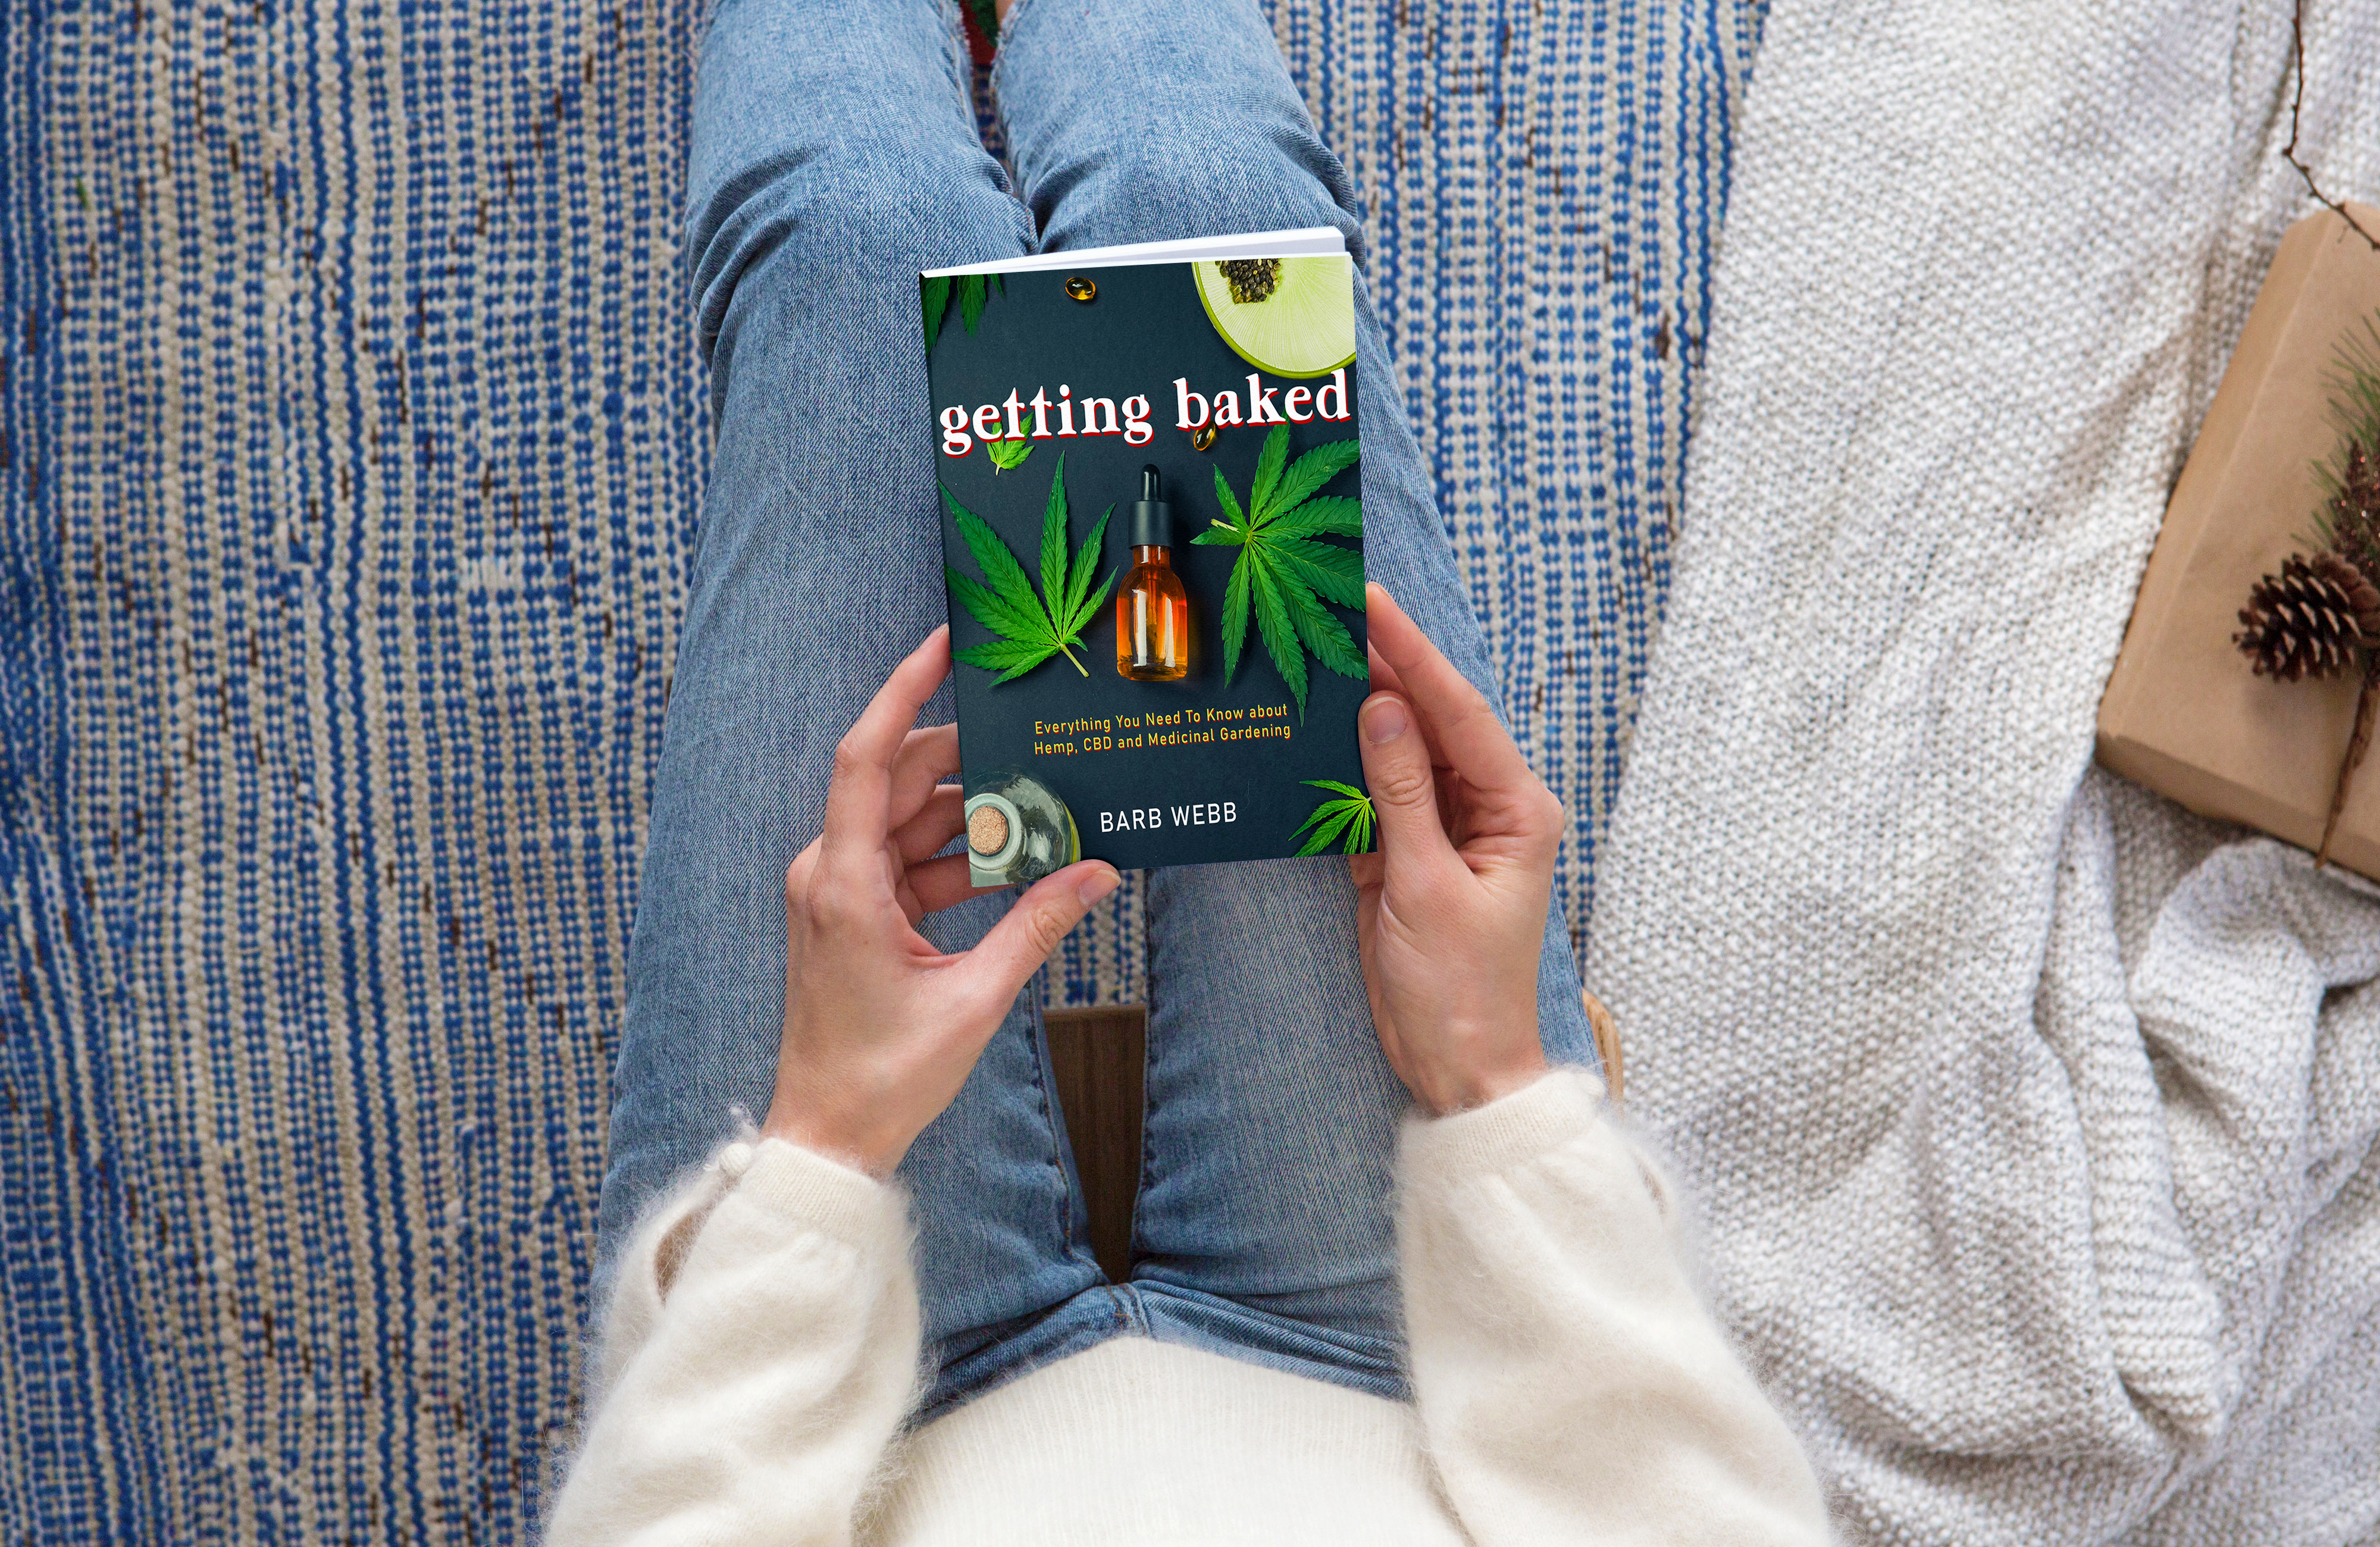 GETTING BAKED: Everything You Need to Know About Hemp, CBD and Medicinal Gardening